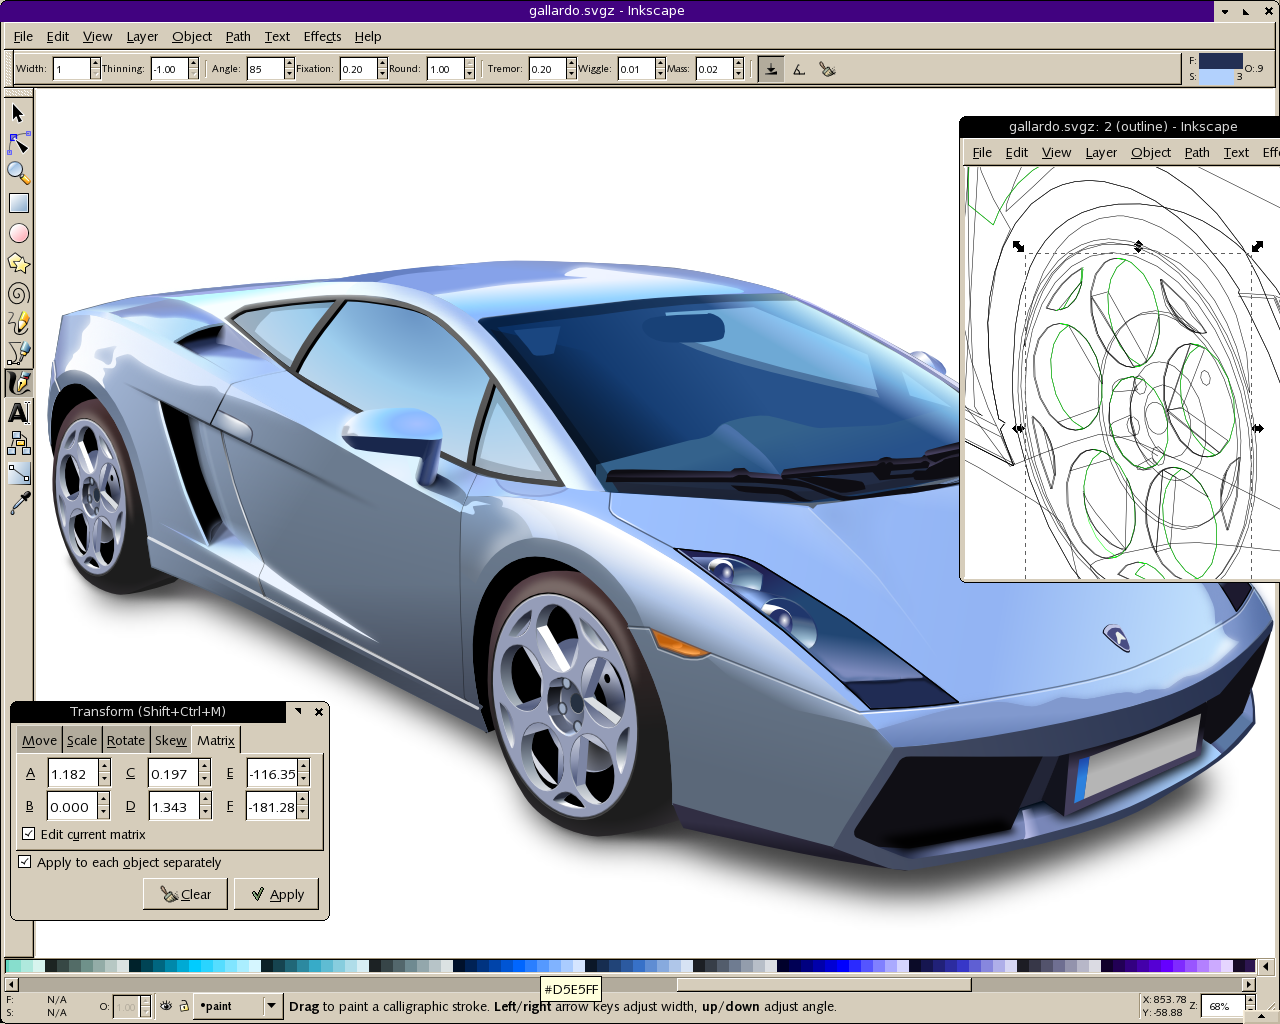 Inkscape Professional Drawing Software vector graphics for W